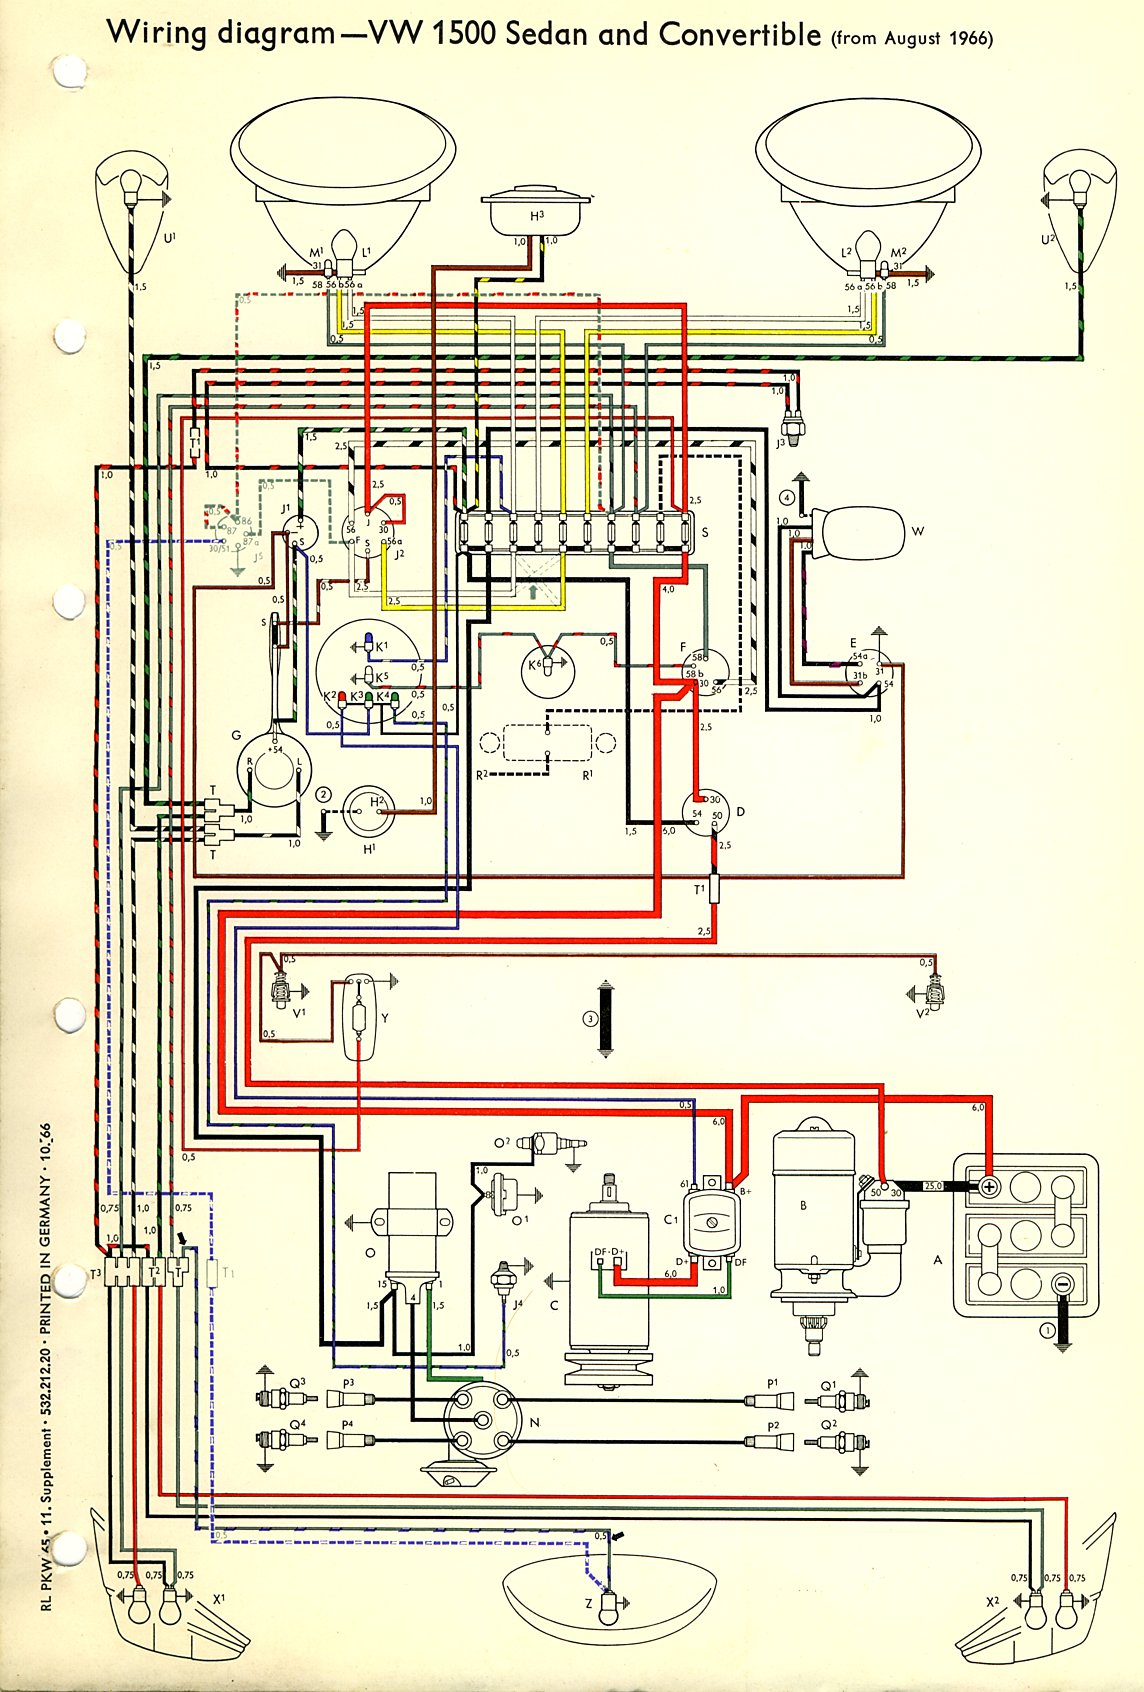 thesamba com type 1 wiring diagrams rh thesamba com 1976 volkswagen beetle wiring diagram 1976 volkswagen beetle wiring diagram